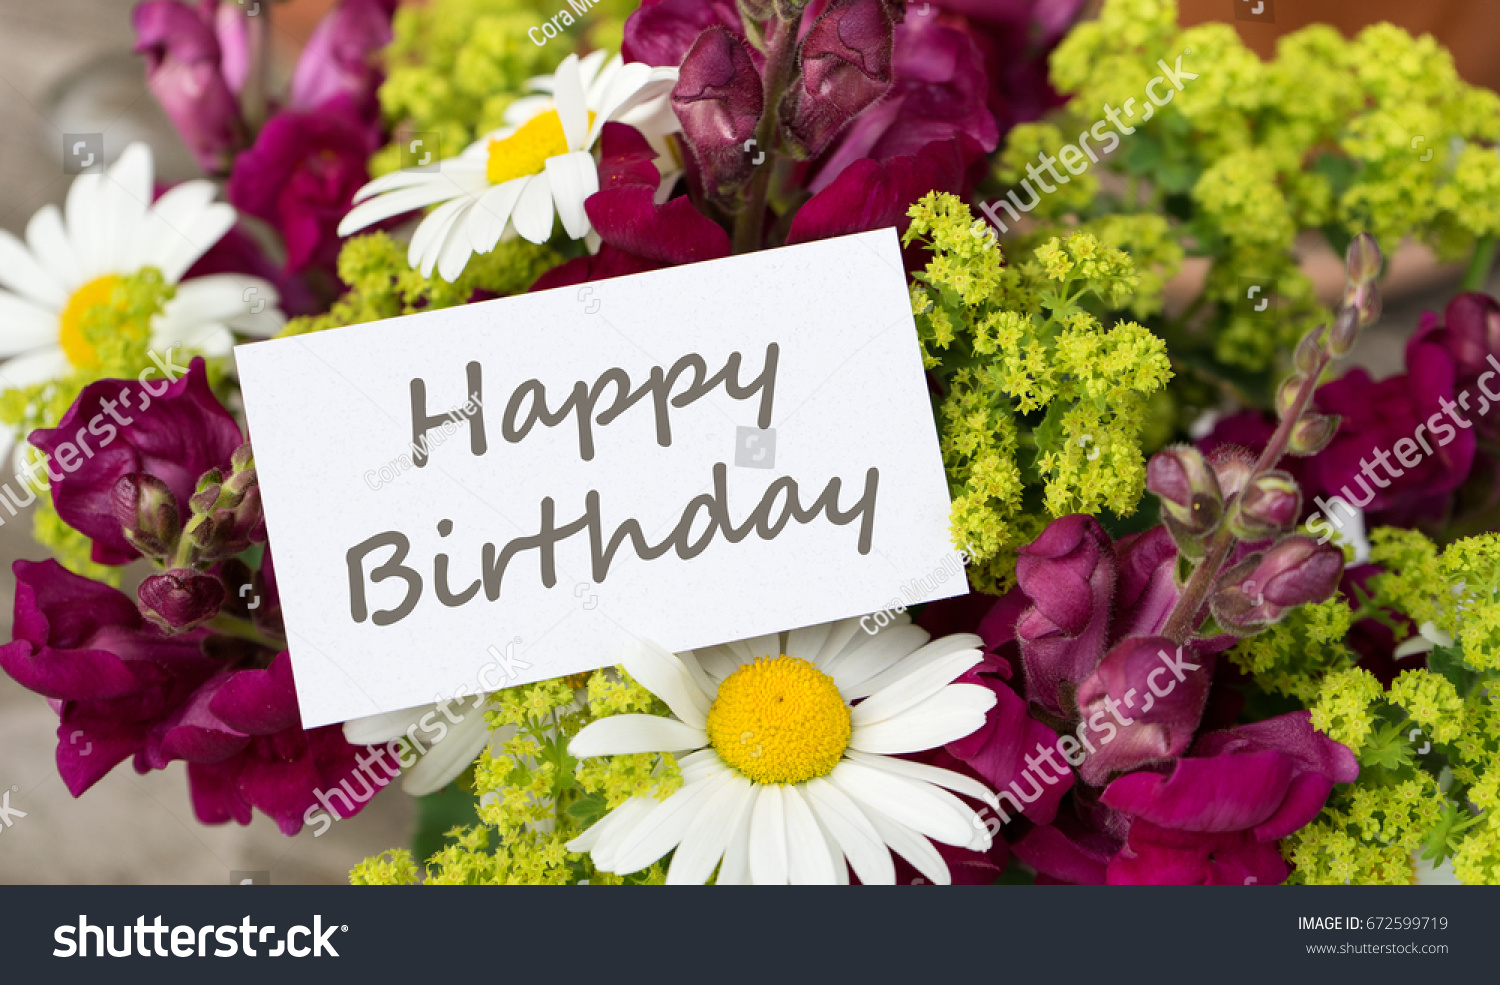 Birthday Card Snapdragons Daisies Birthday Greetings Stock Photo